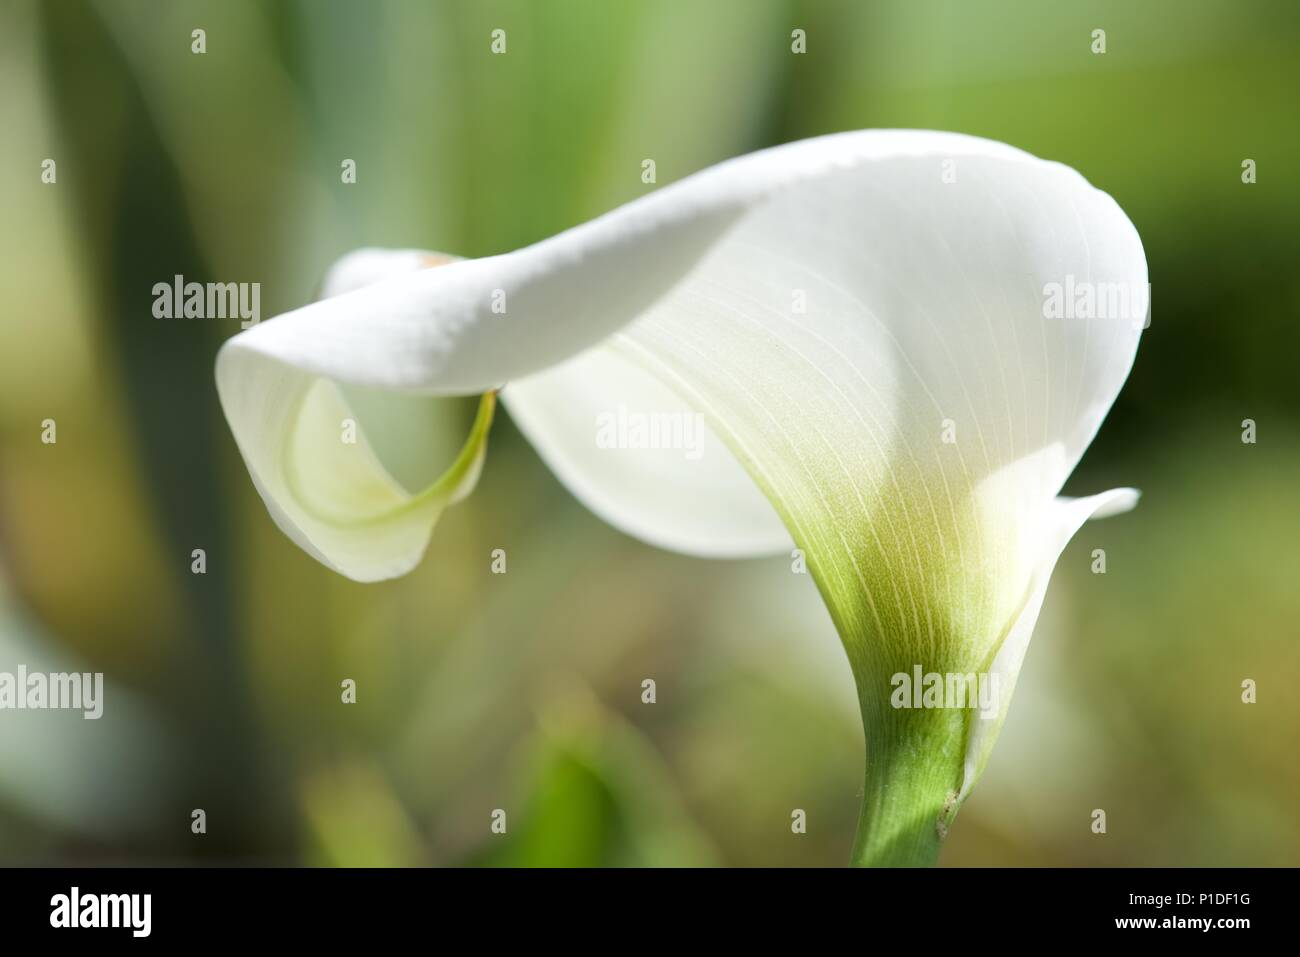 Arum Lily (Zantedeschia aethiopica): a close up of an Arum Lily flower - Stock Image